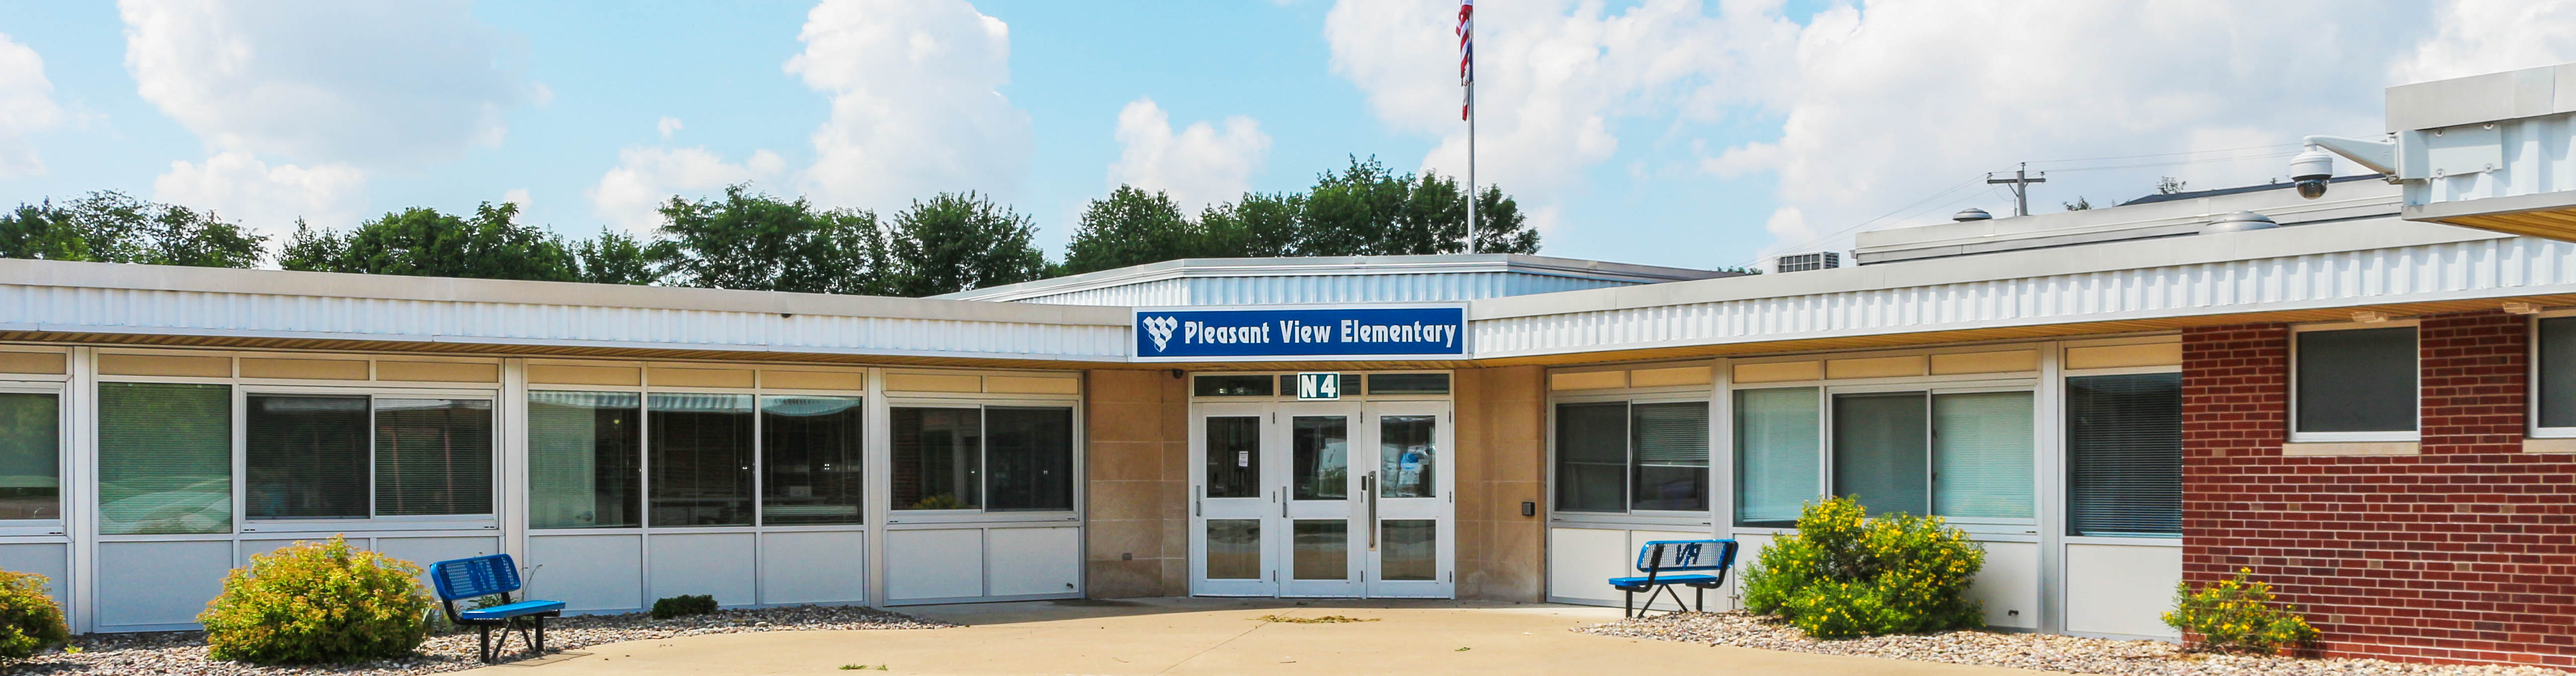 Pleasant View Elementary Building